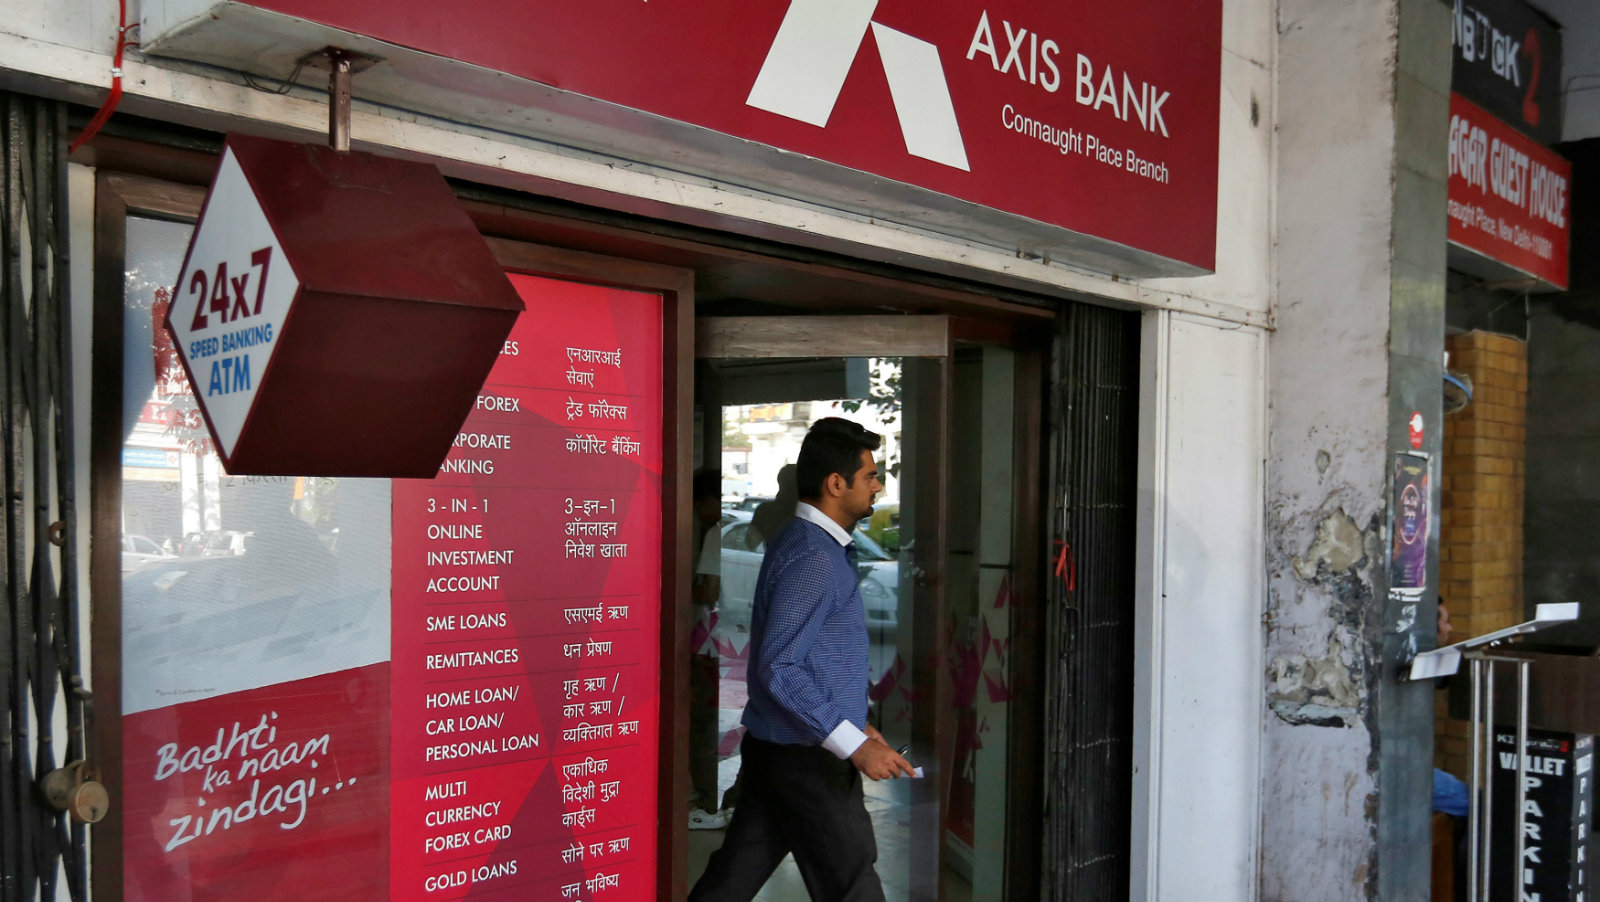 A man leaves an Axis Bank automated teller machine (ATM) in New Delhi, India, October 20, 2016.